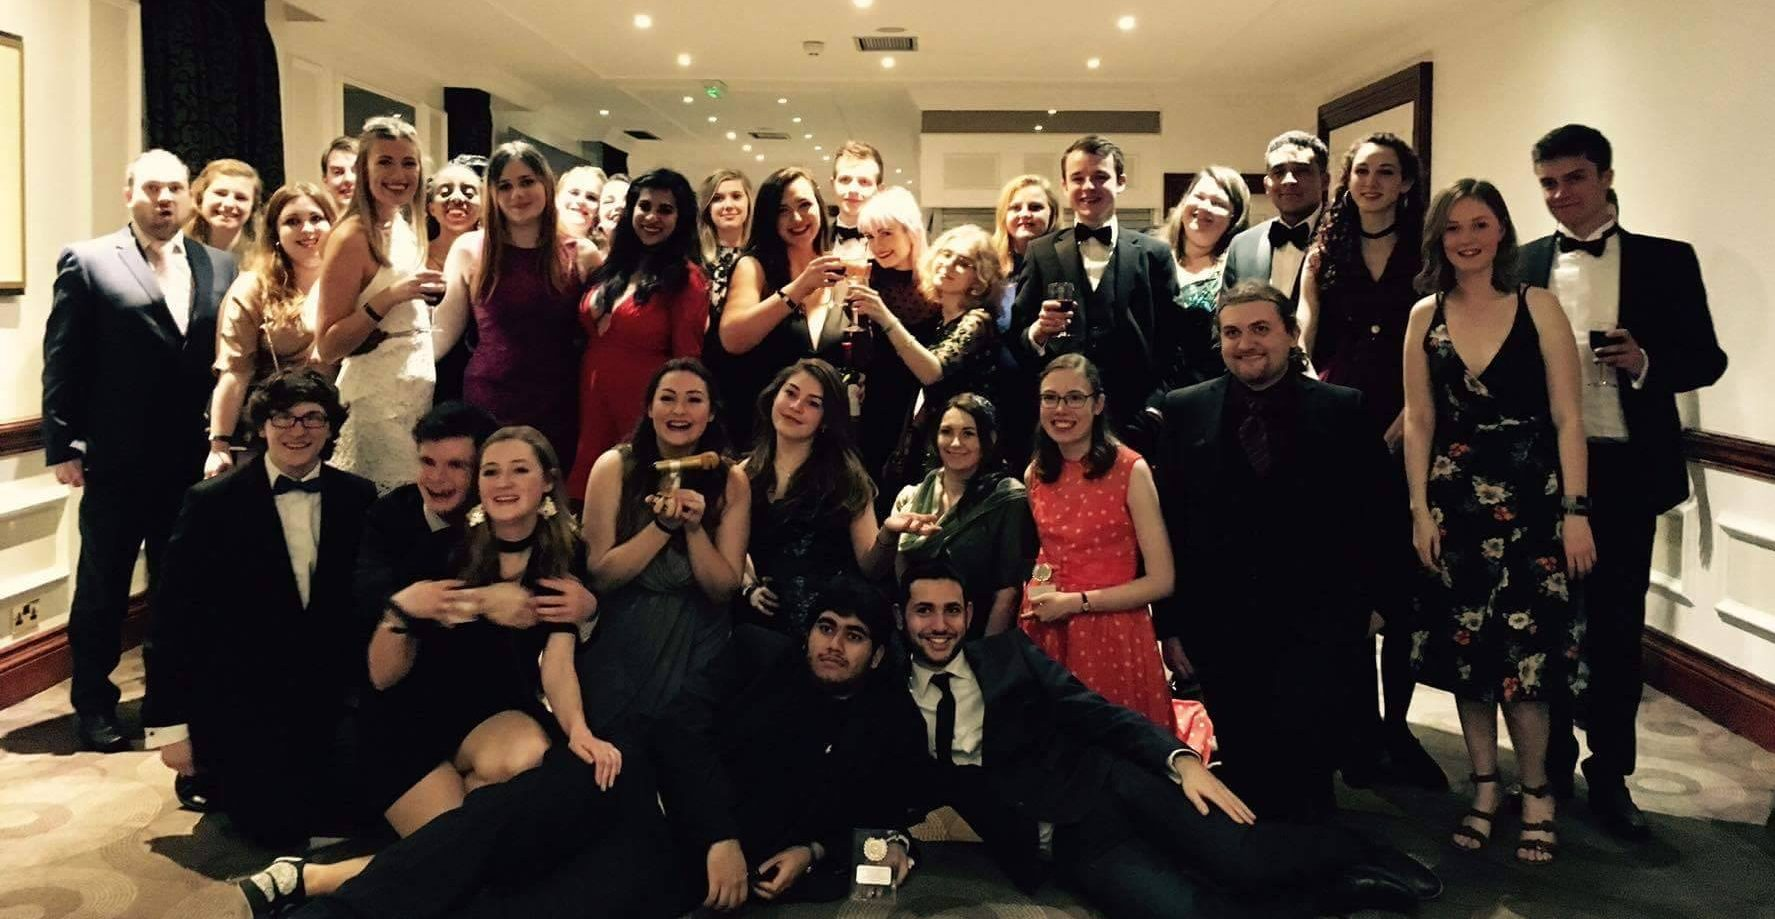 Insanity Radio at the Societies & Media Ball